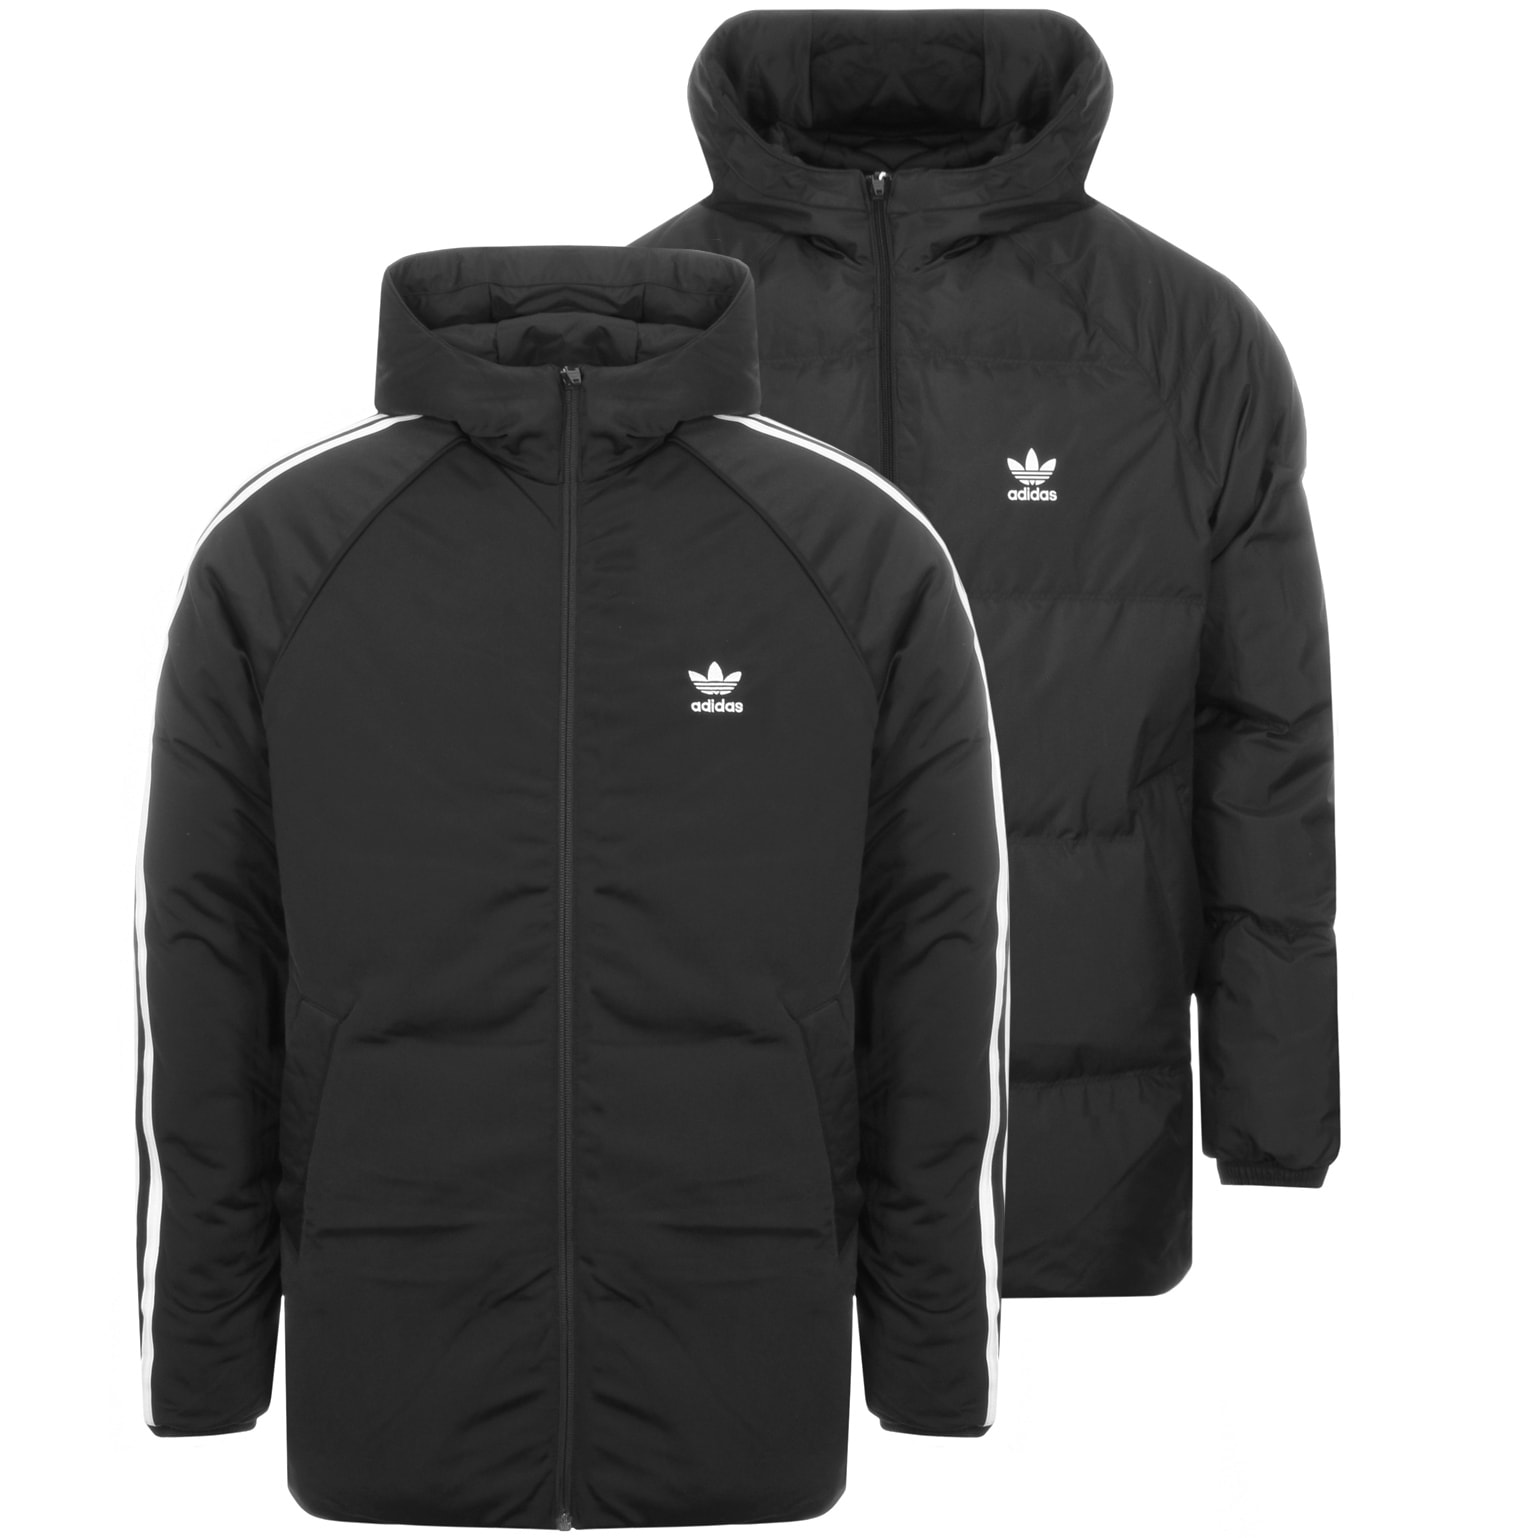 Adidas Originals Reversible Padded Jacket Black Mainline Menswear